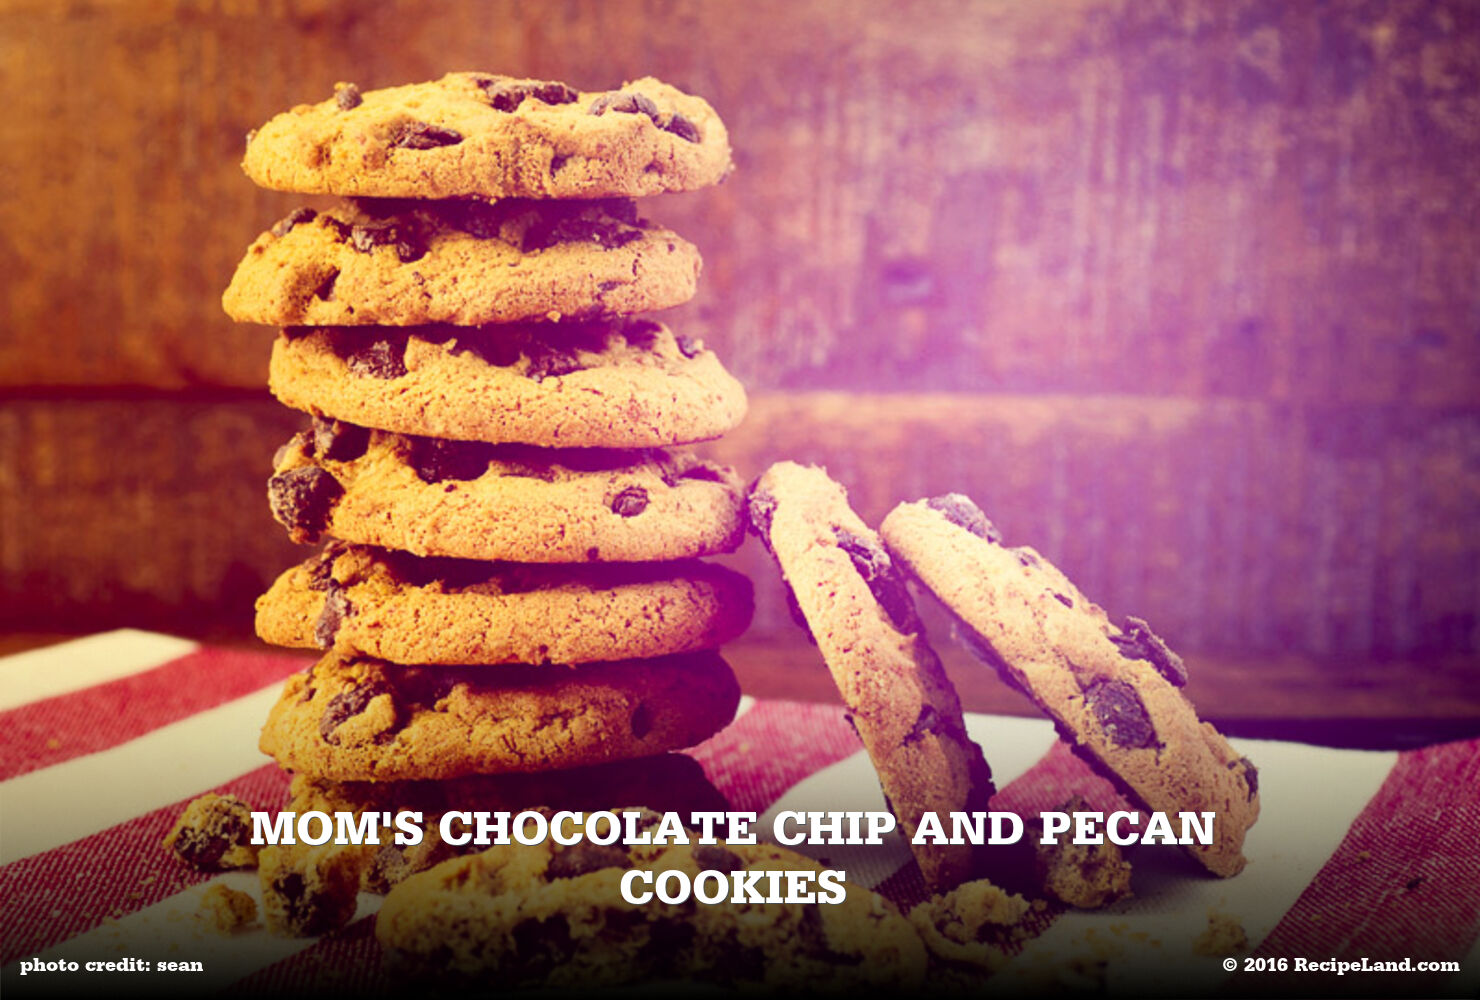 Mom's Chocolate Chip and Pecan Cookies